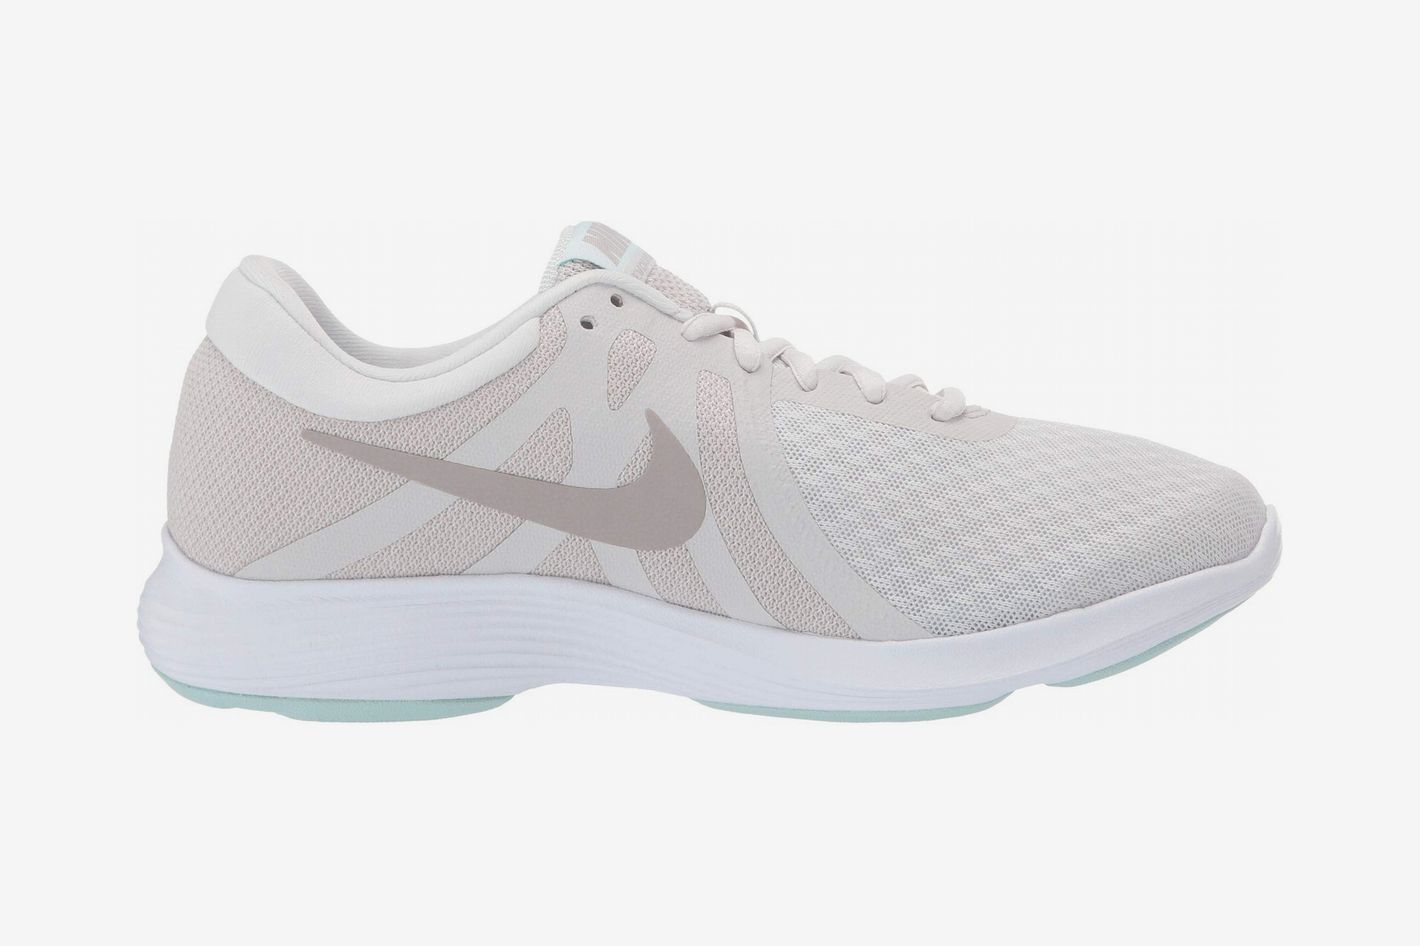 40bc3f406a283 11 Nike Shoes for Women 2019